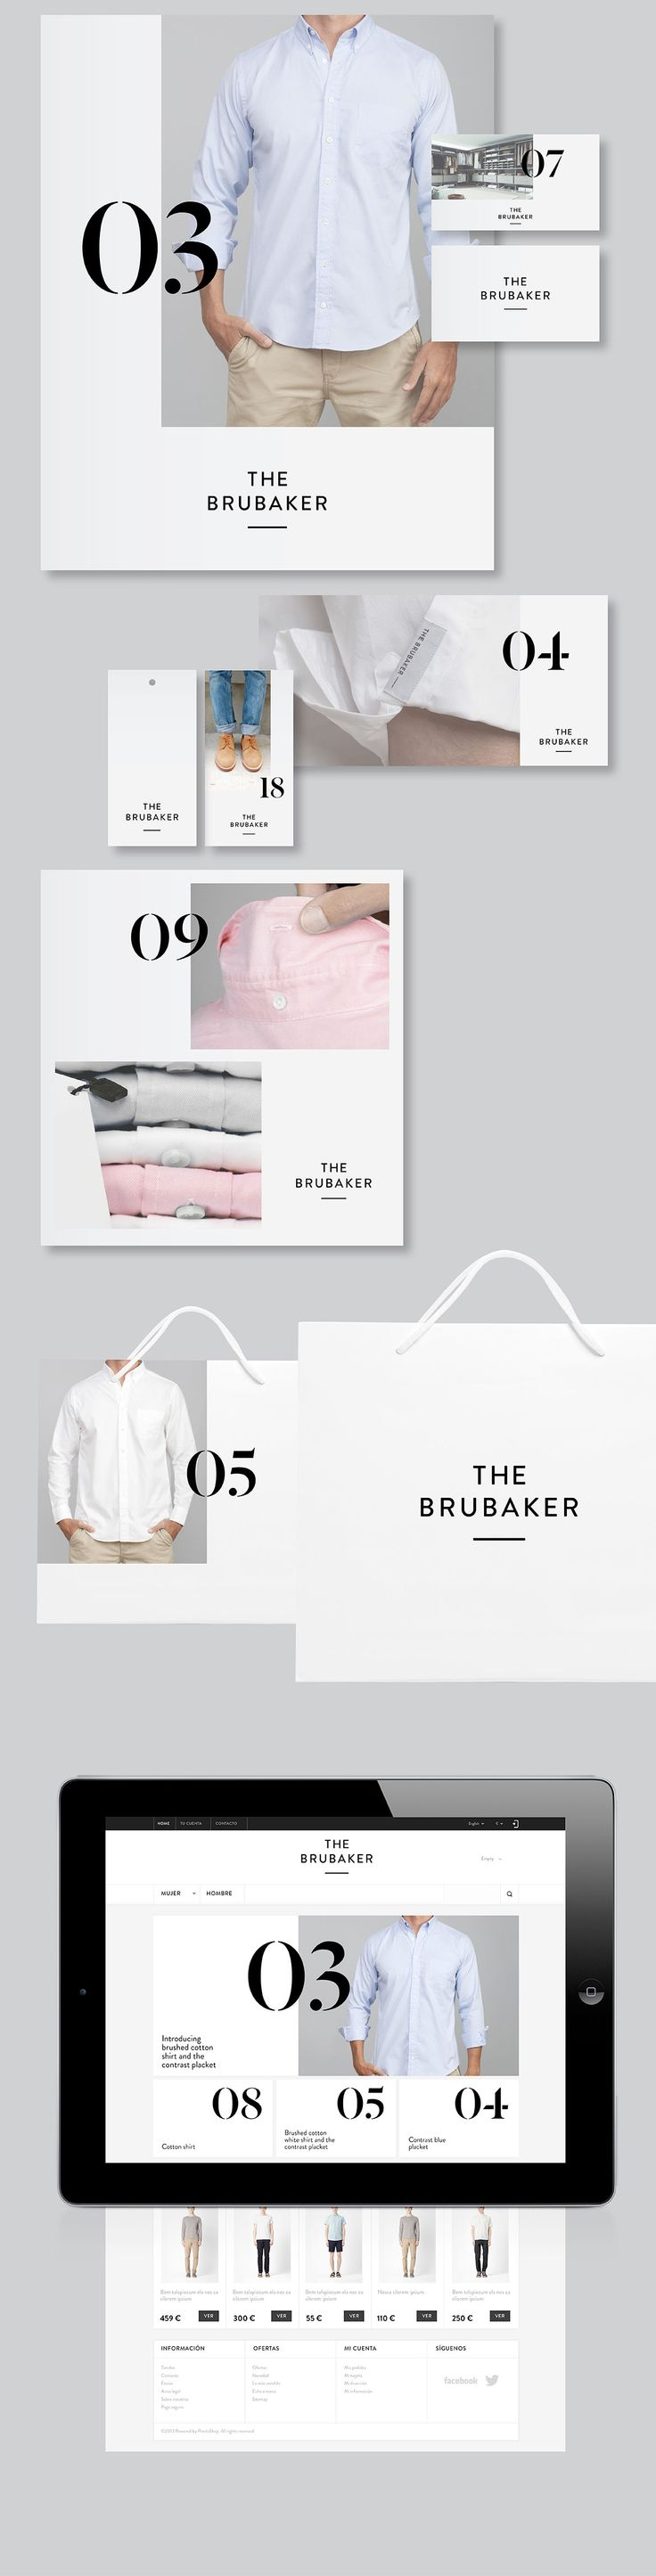 The Brubaker - Identidad y Piezas Gráficas transition from booklet- bag - app